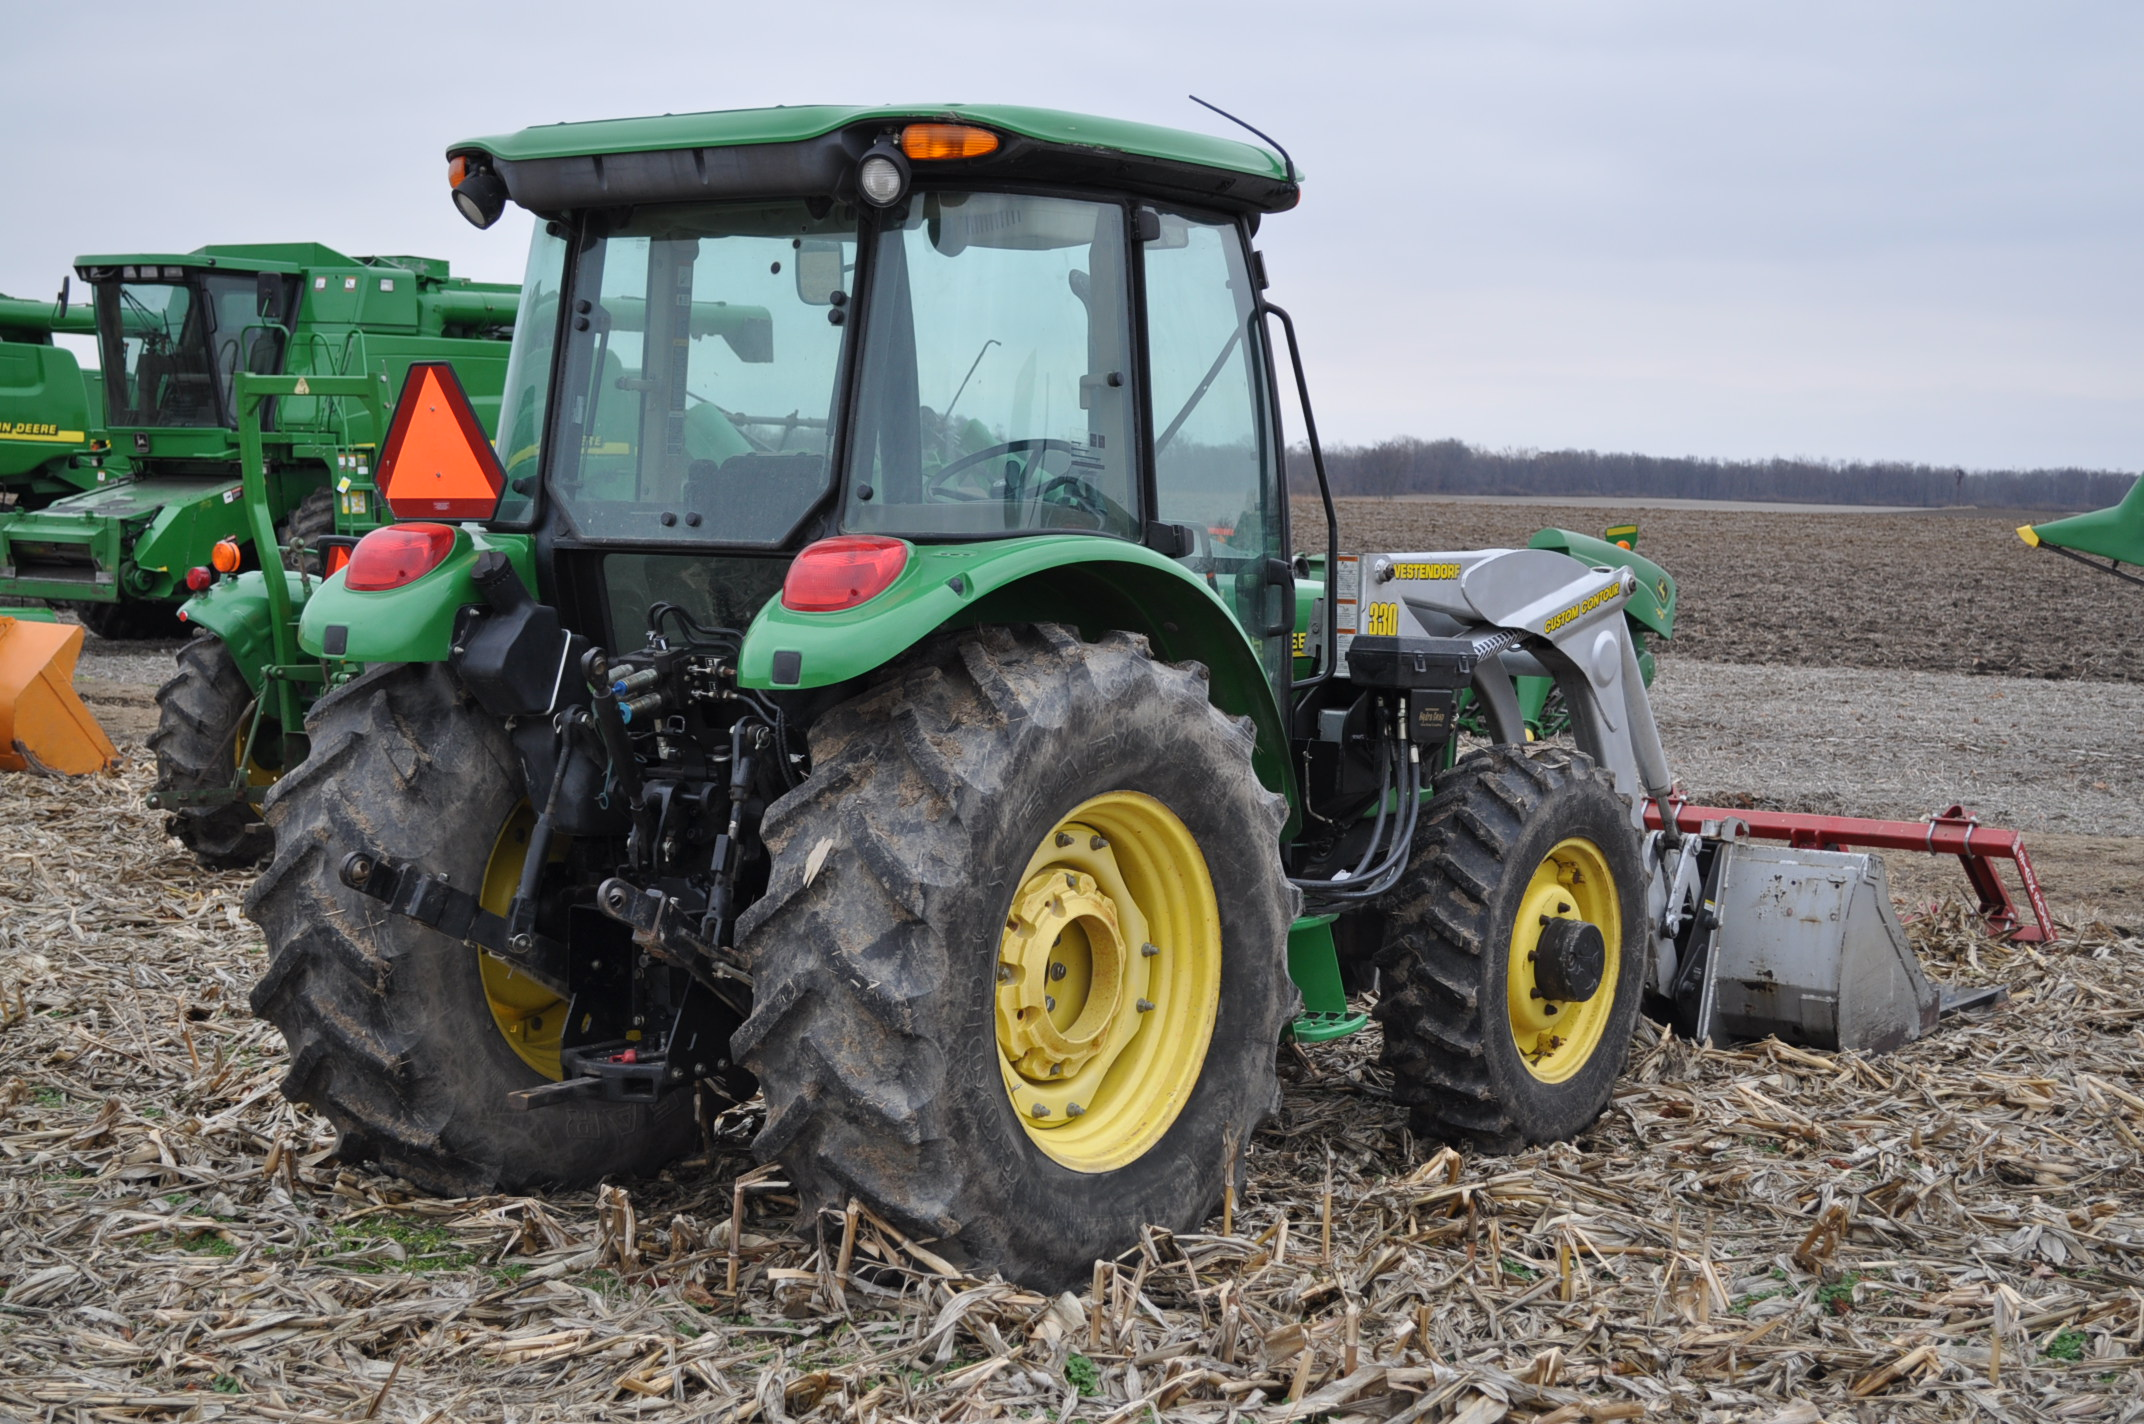 John Deere 5520 utility tractor, MFWD, 18.4 R 30 rear, 12.4-24 front, rear wheel wts, 2 hyd remotes, - Image 3 of 26